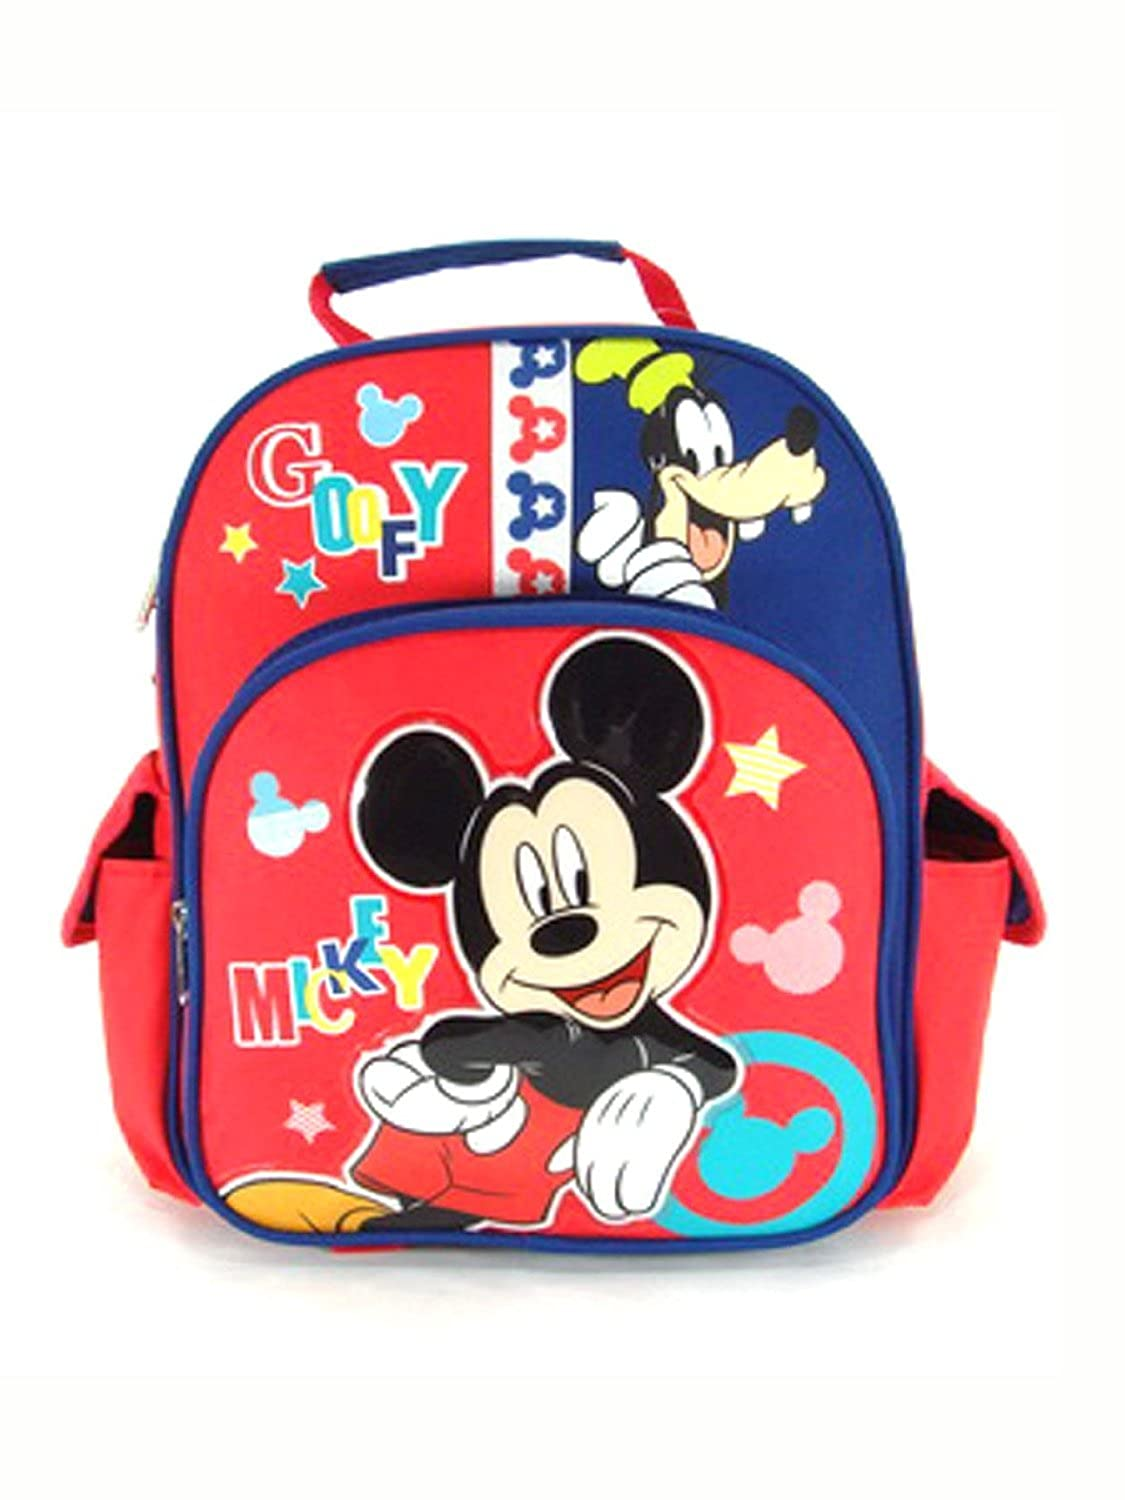 43c15139562a Small Backpack - Disney - Mickey Mouse - Sunshine V2 12